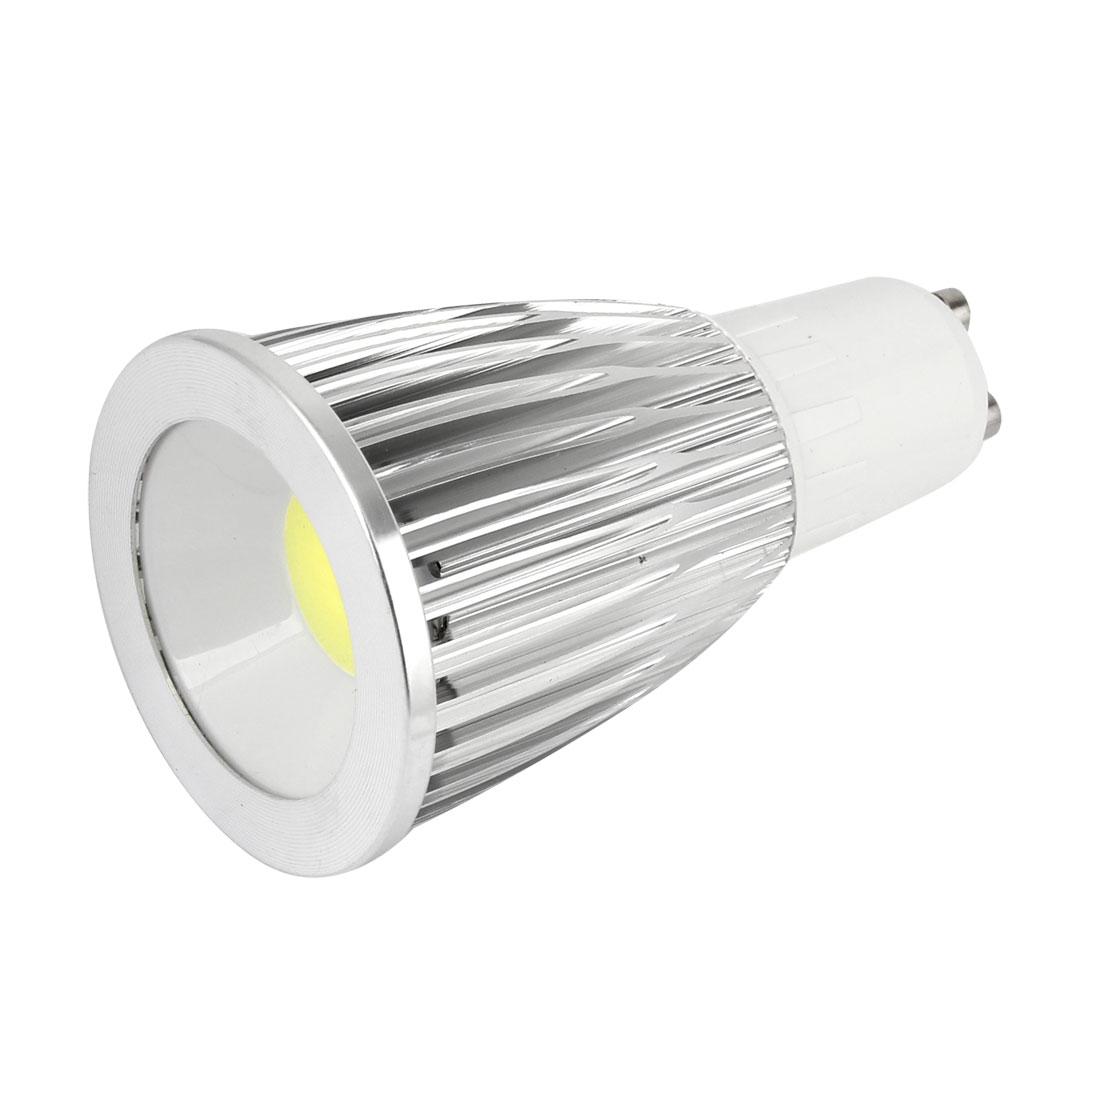 AC 85-265V 12W GU10 Dimmable Cool White Light COB LED Downlight Spotlight